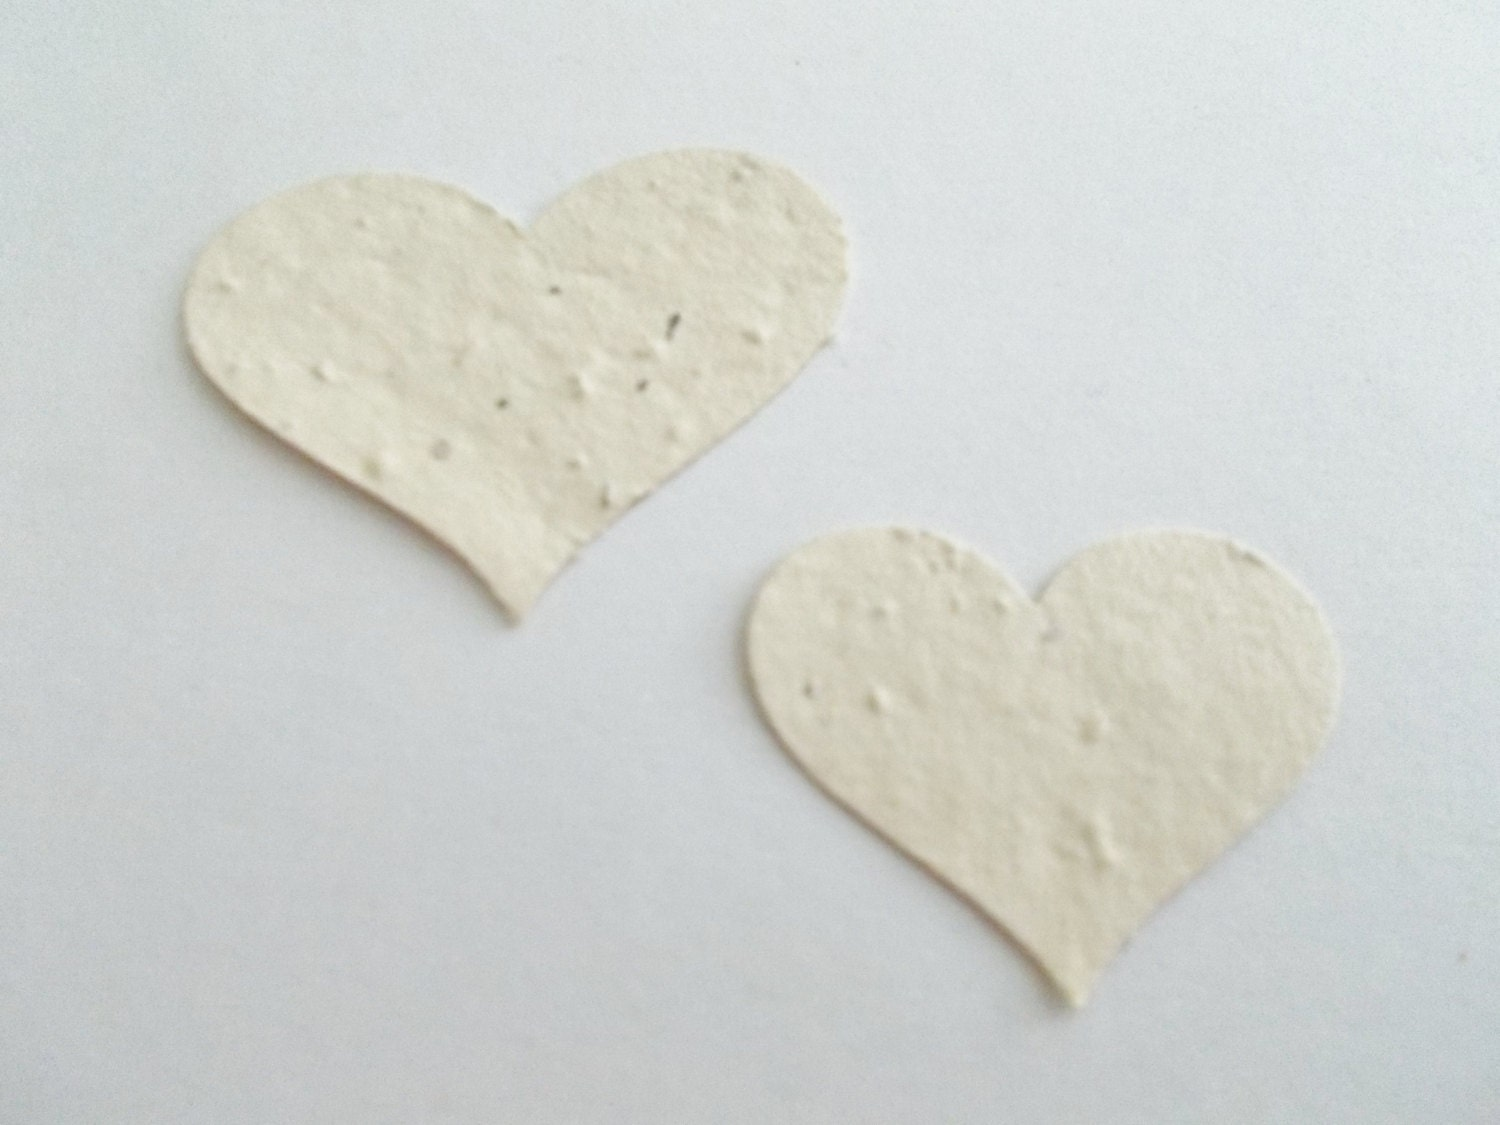 50 Cream Heart Confetti Wedding, Shower and Party Decoration - Eco Friendly Plantable Paper with Wildflowers